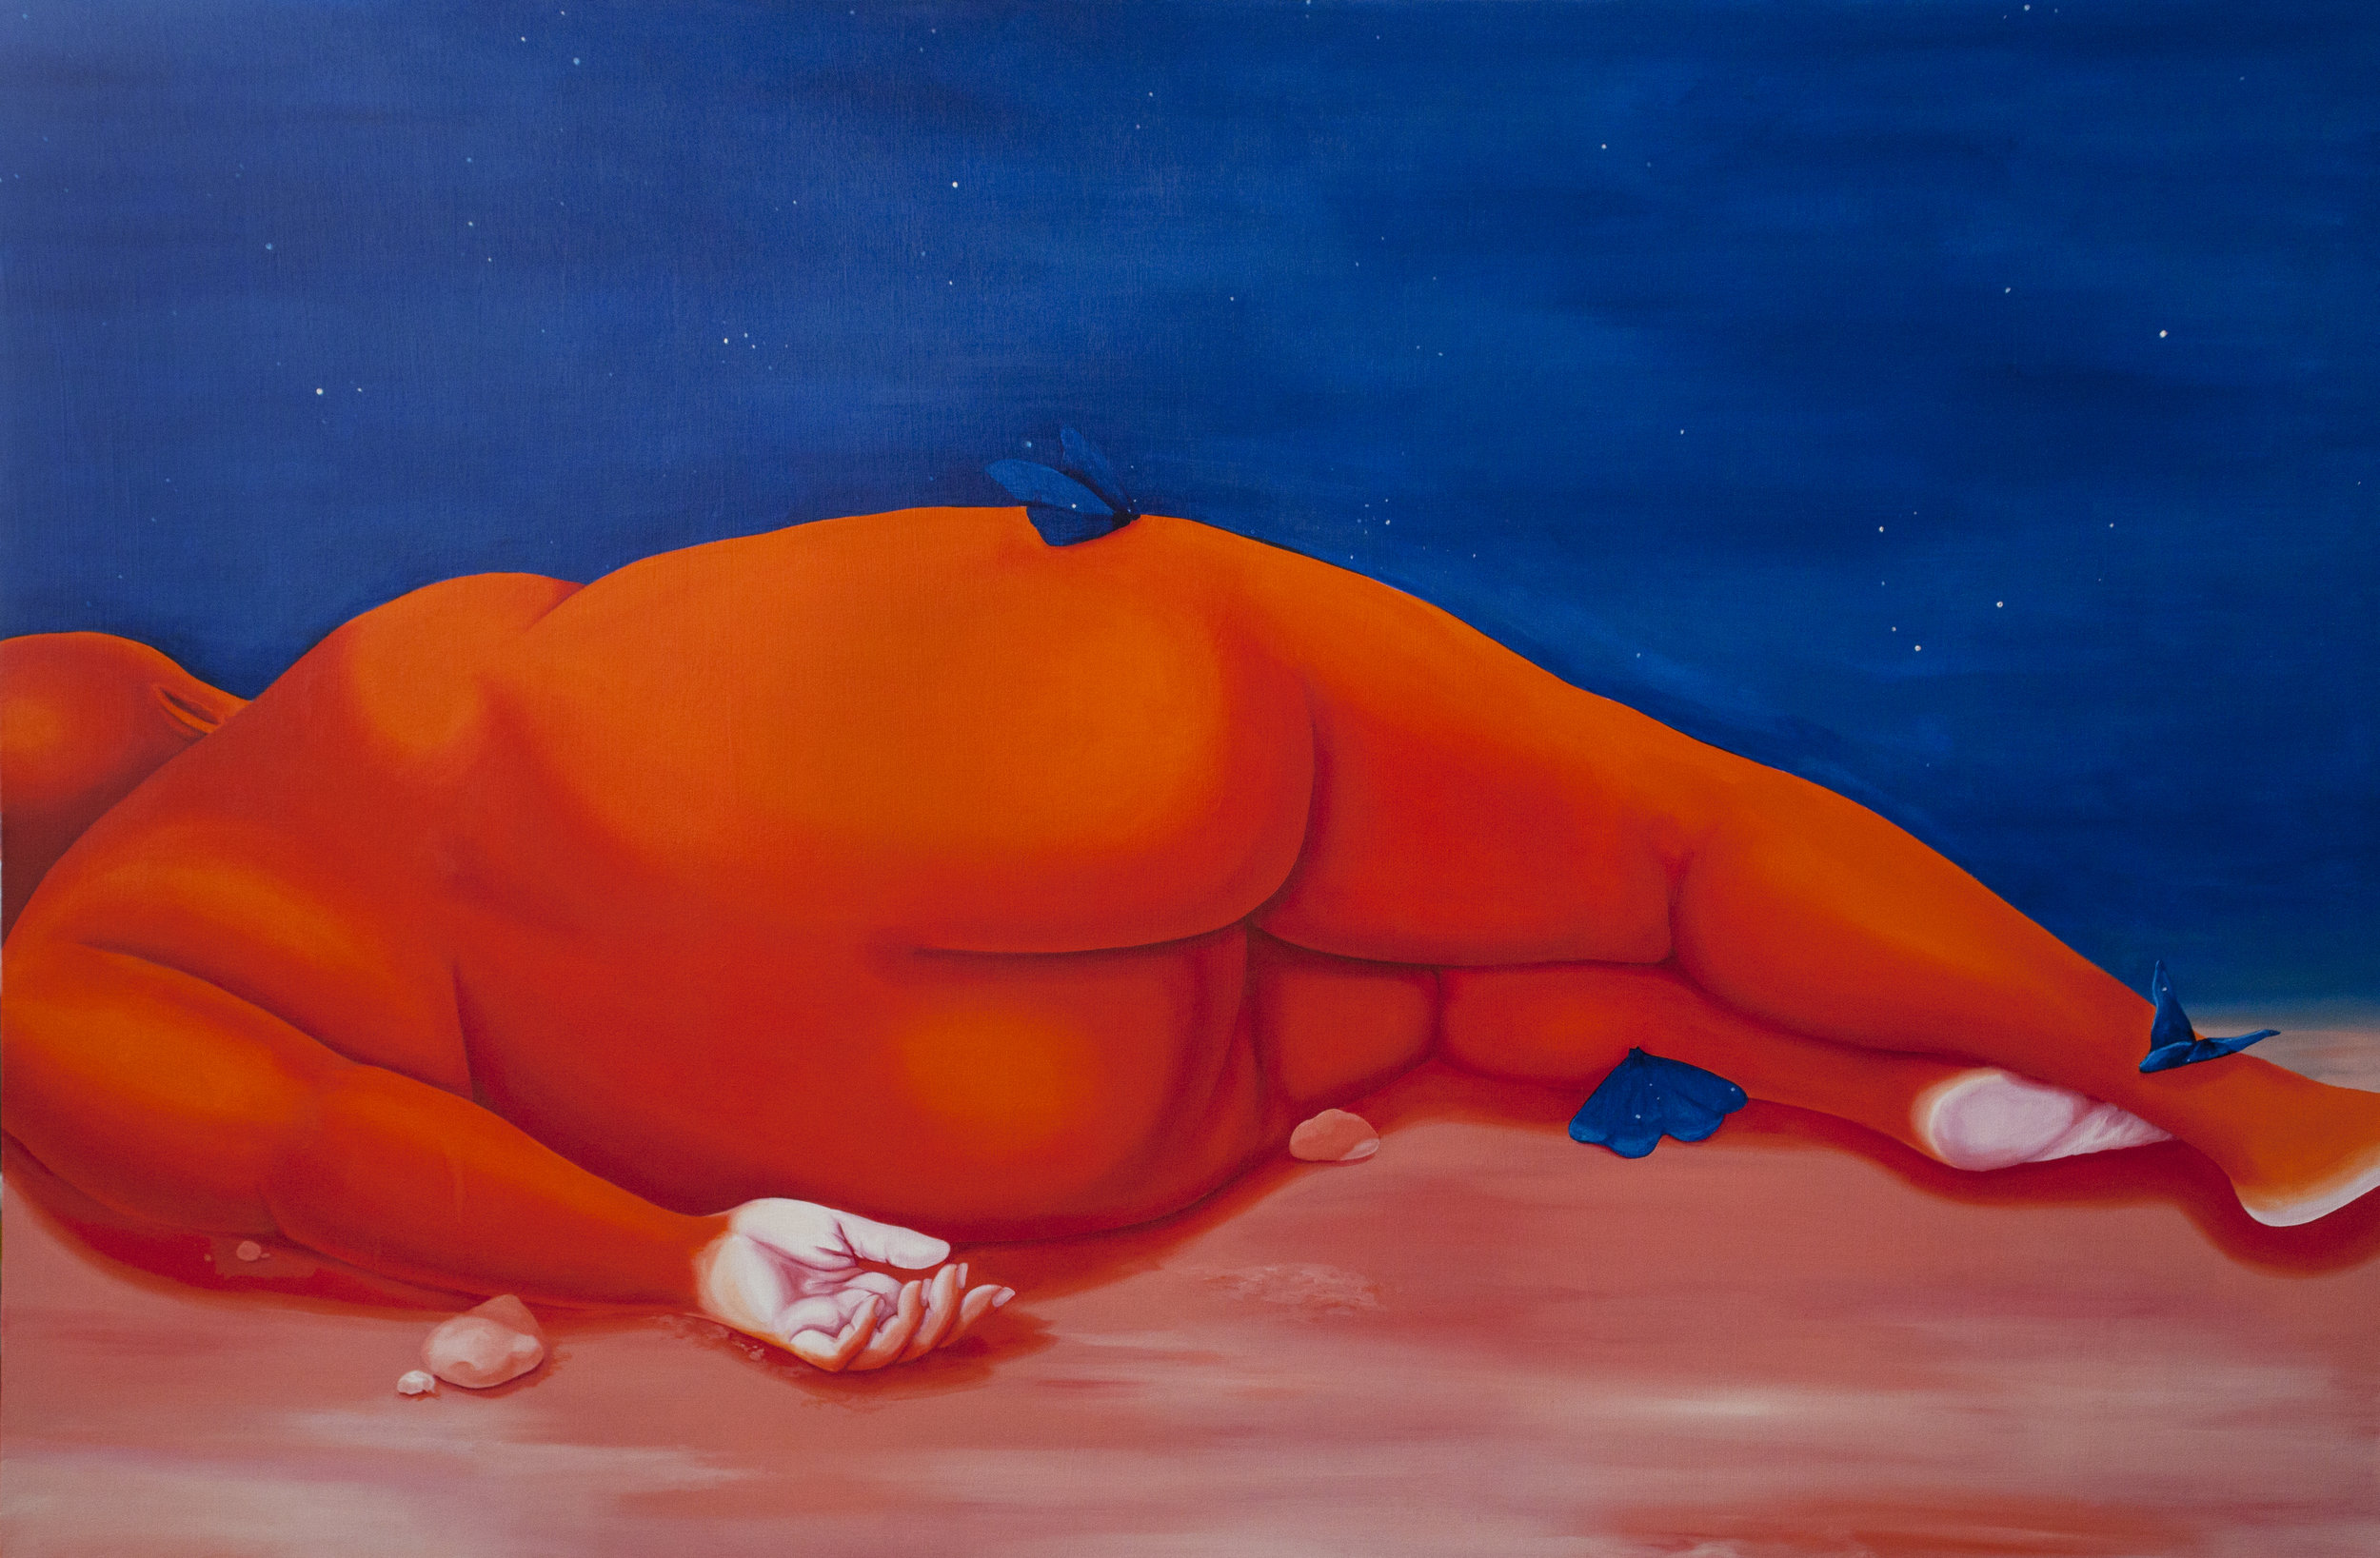 Brittney Leeanne Williams  An Unmoving Rock , 2019 oil and acrylic on canvas 40h x 60w in